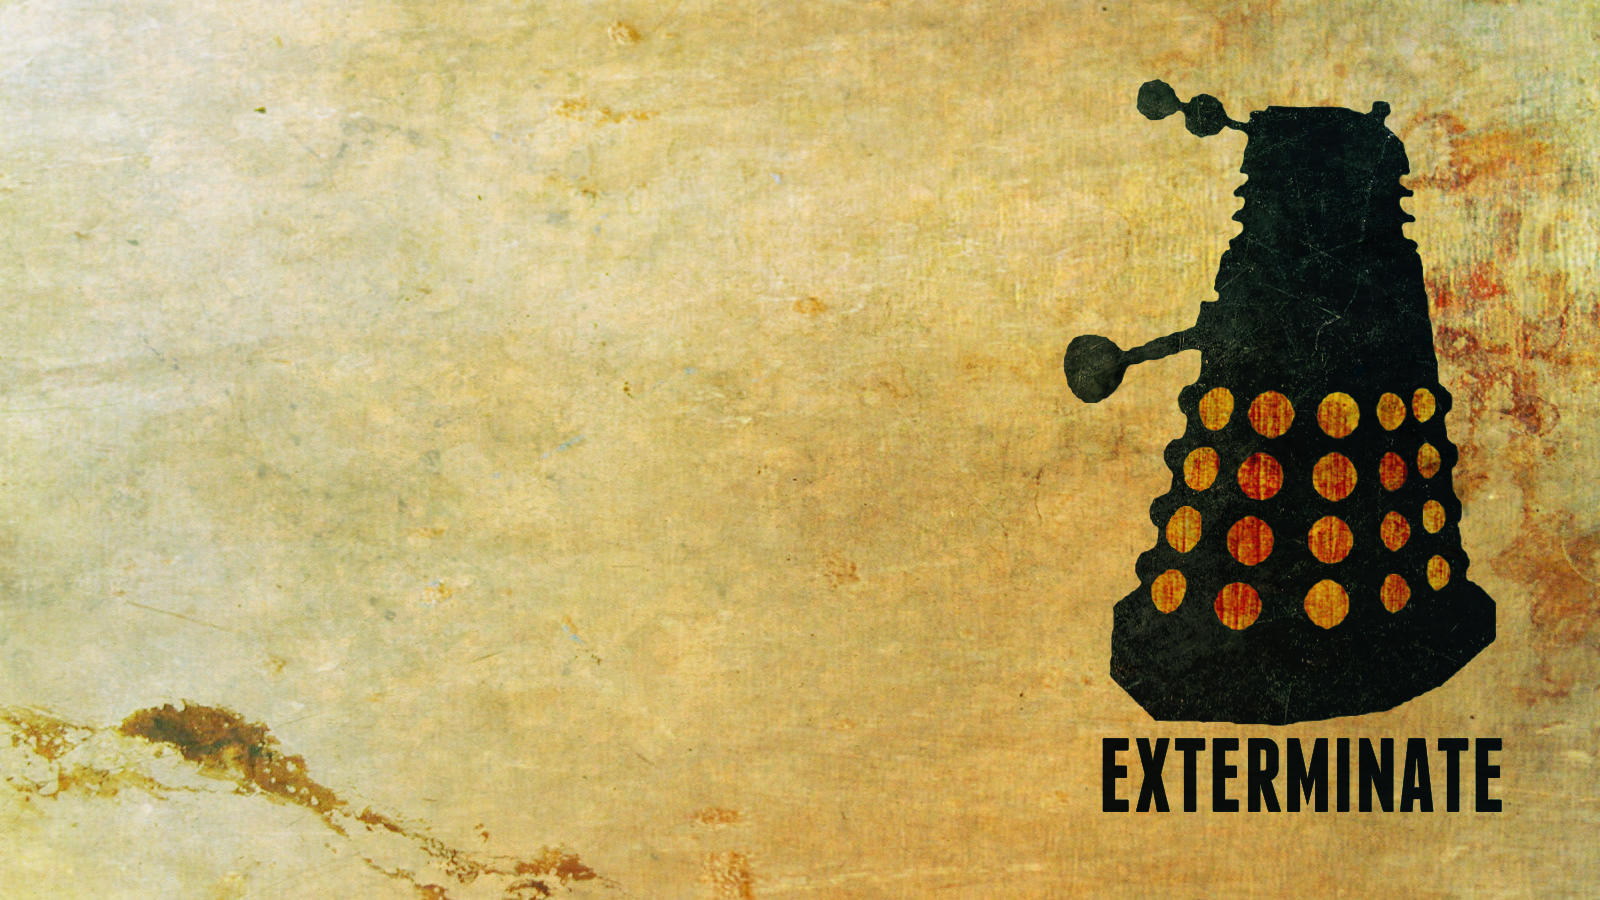 Doctor Who - Dalek Wallpaper by heggcnote on DeviantArt